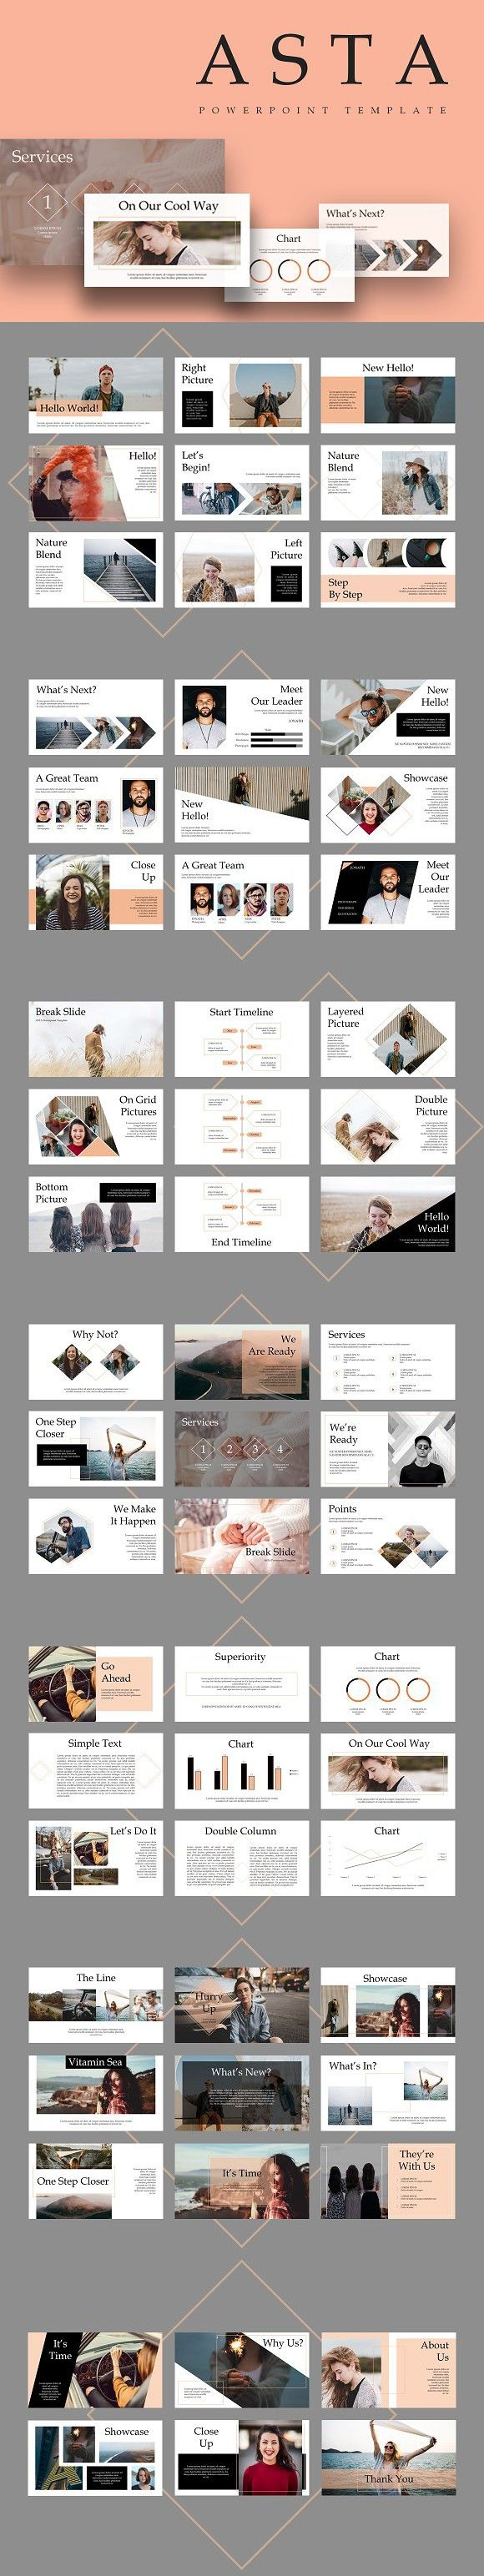 ASTA Powerpoint Template. Presentation Templates